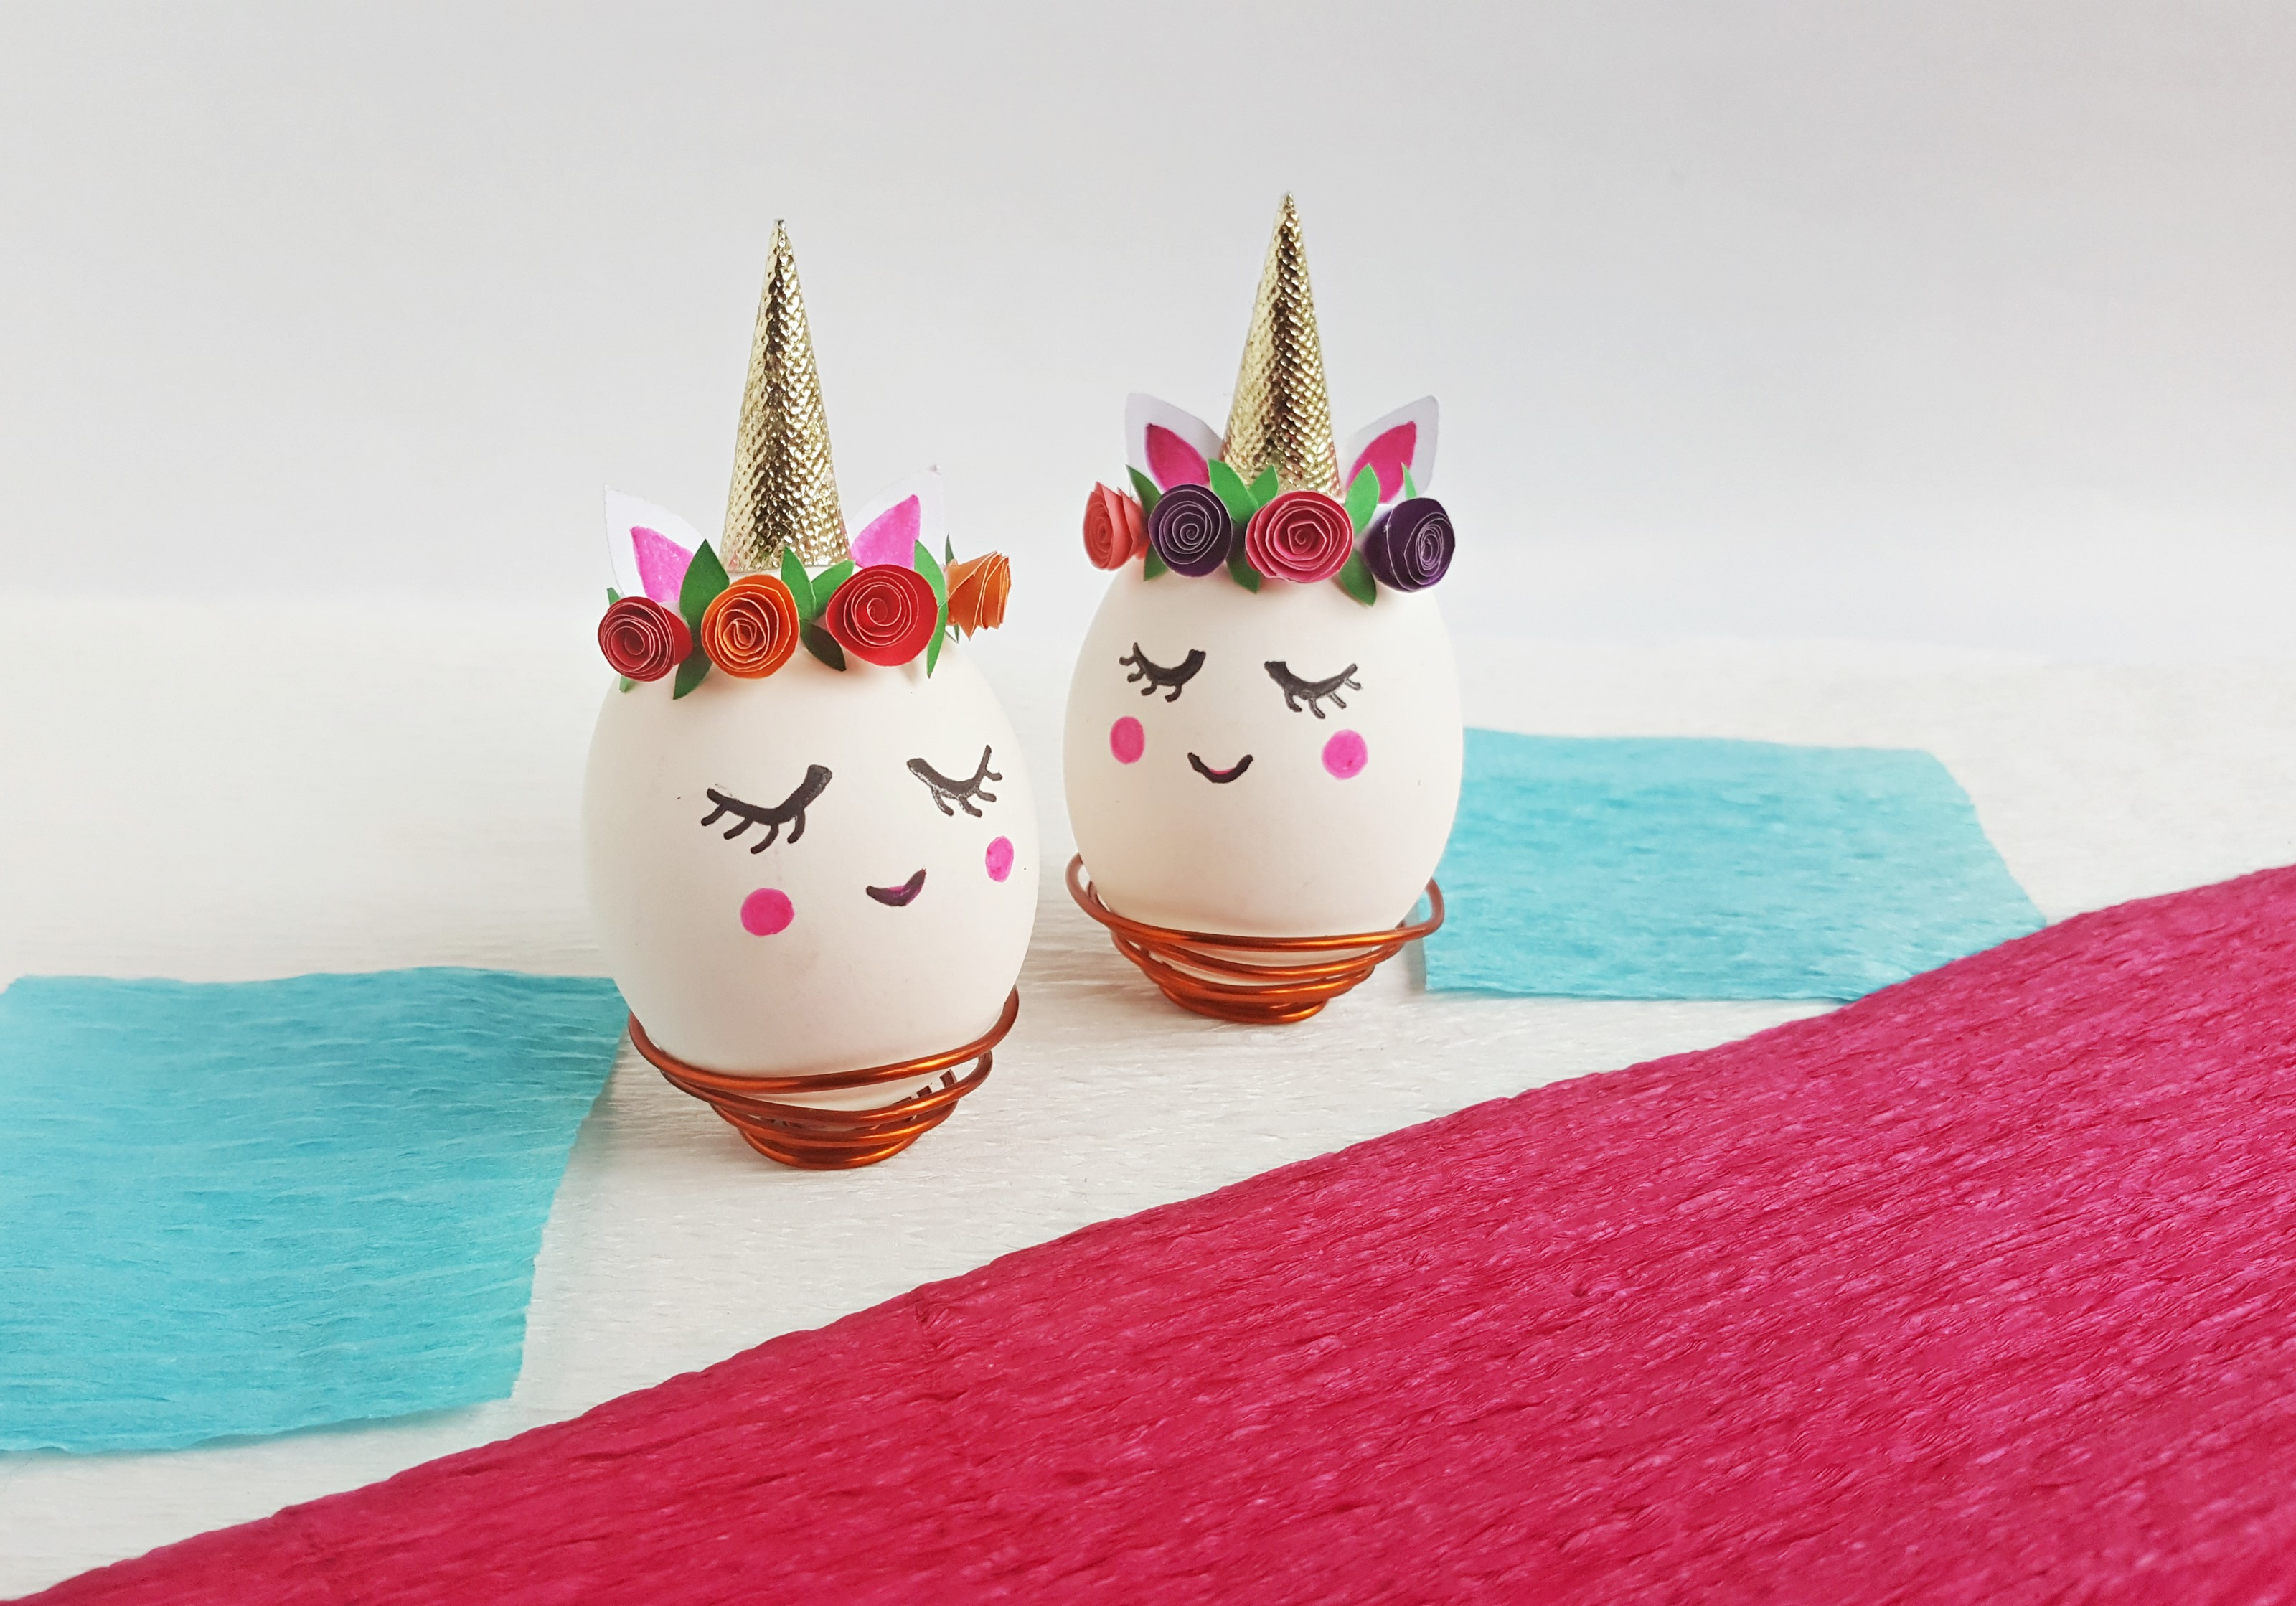 Beautiful Easter Eggs craft, Adorable Unicorn Egg that is an easy Unicorn craft for kids, DIY Unicorn egg